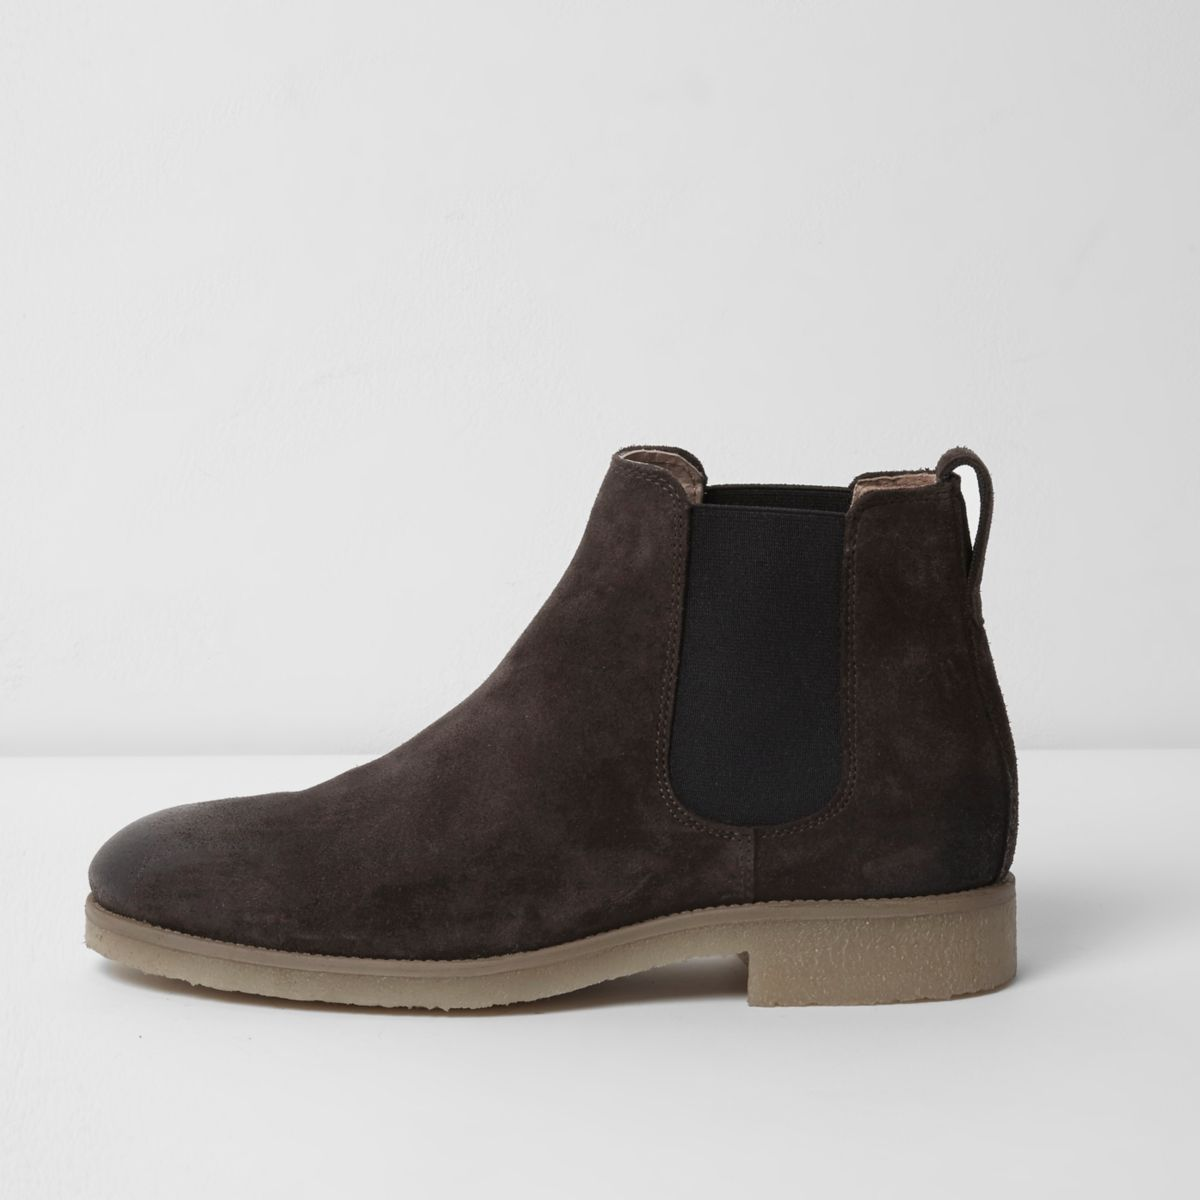 brown suede chelsea boots boots shoes boots